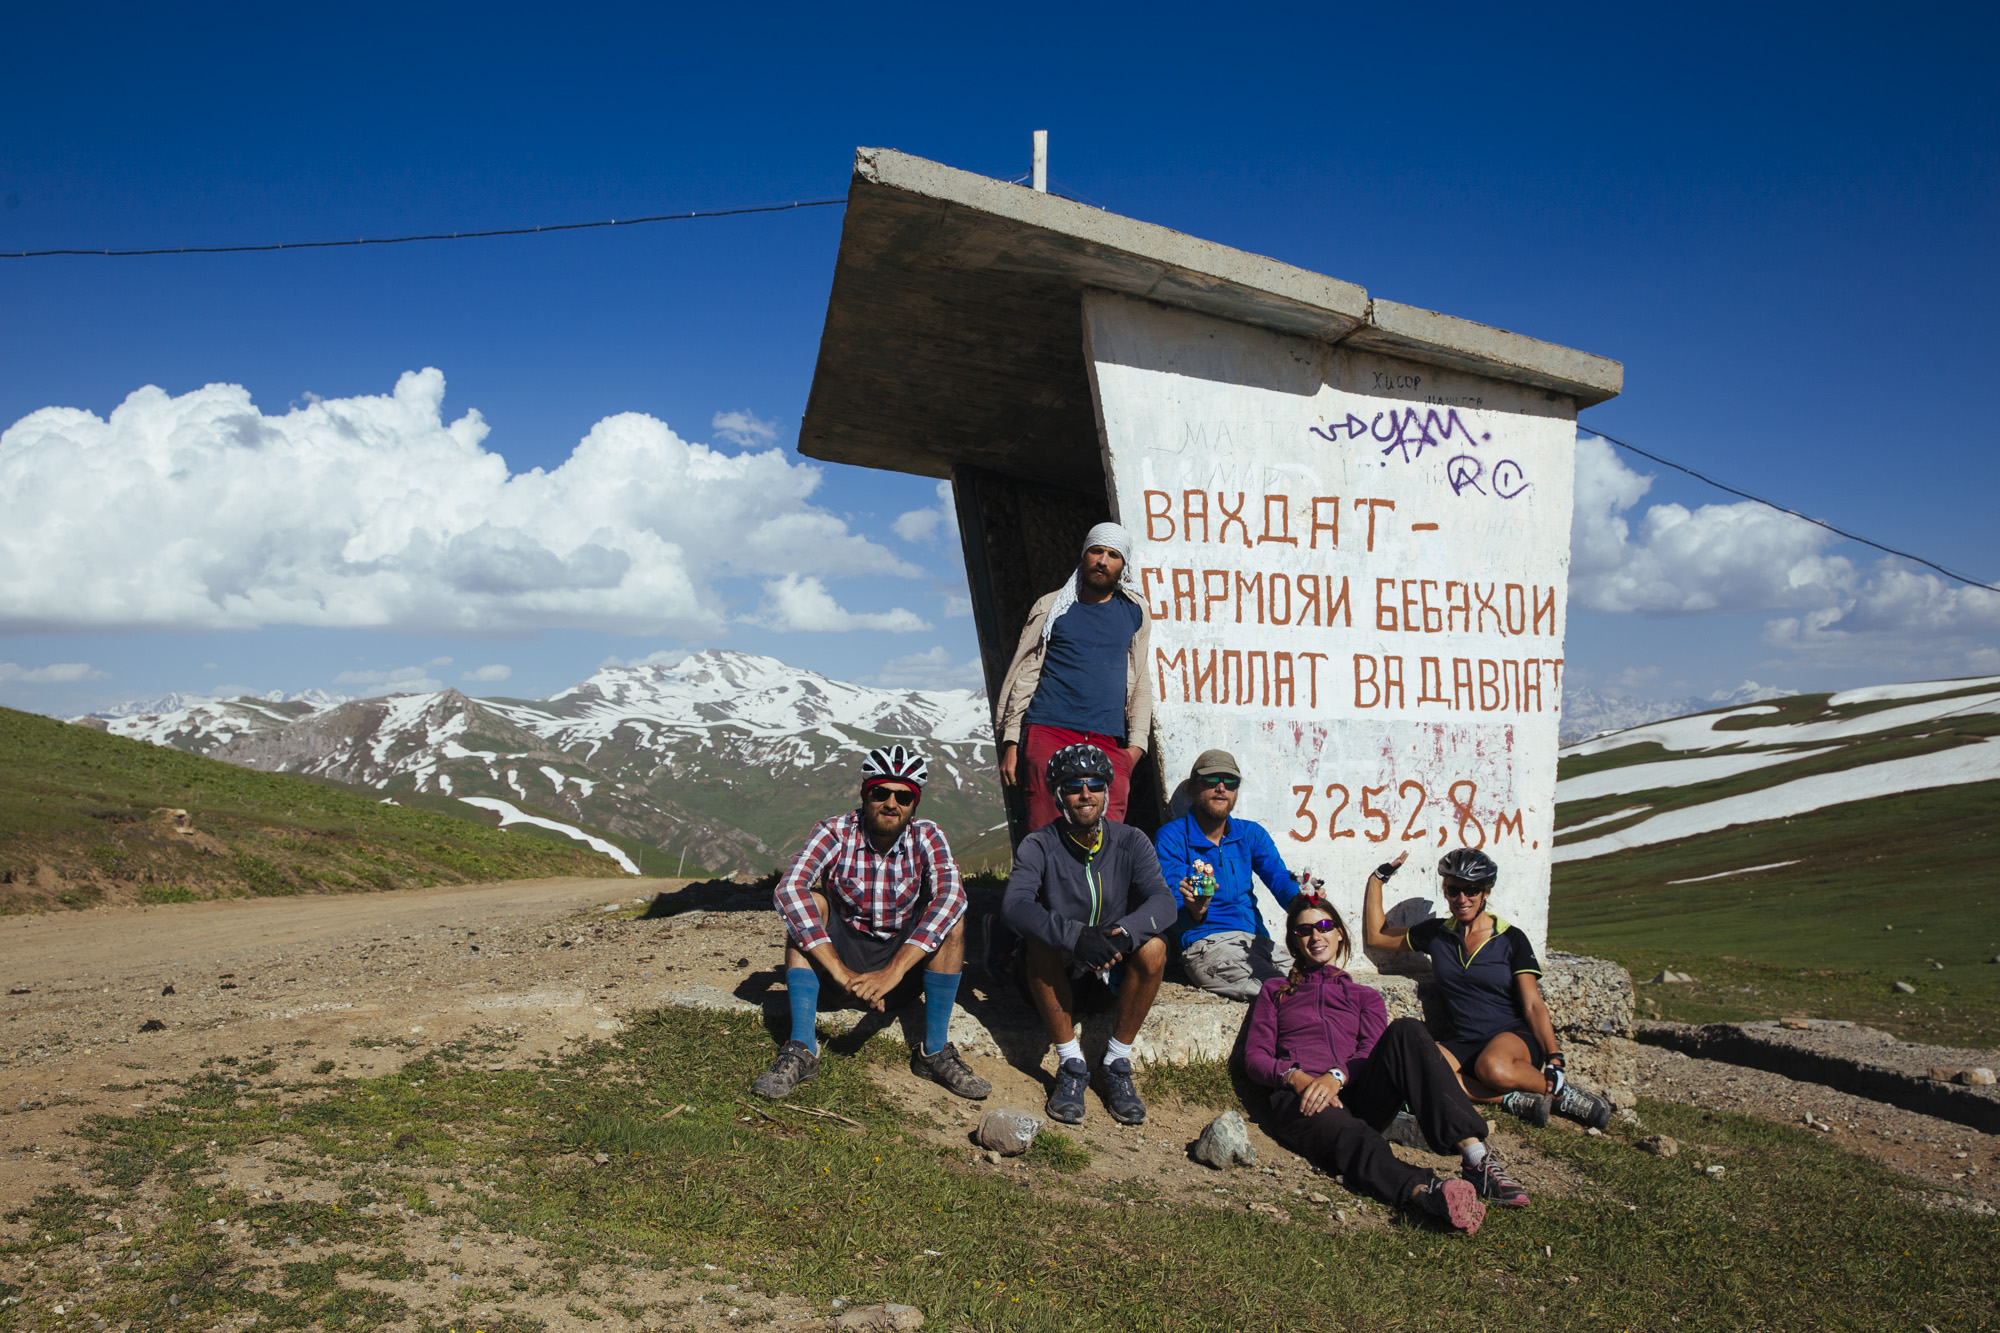 After 1'600m in very steep terrain we reached the Saghirdasht pass that brings us to the border river Panj.